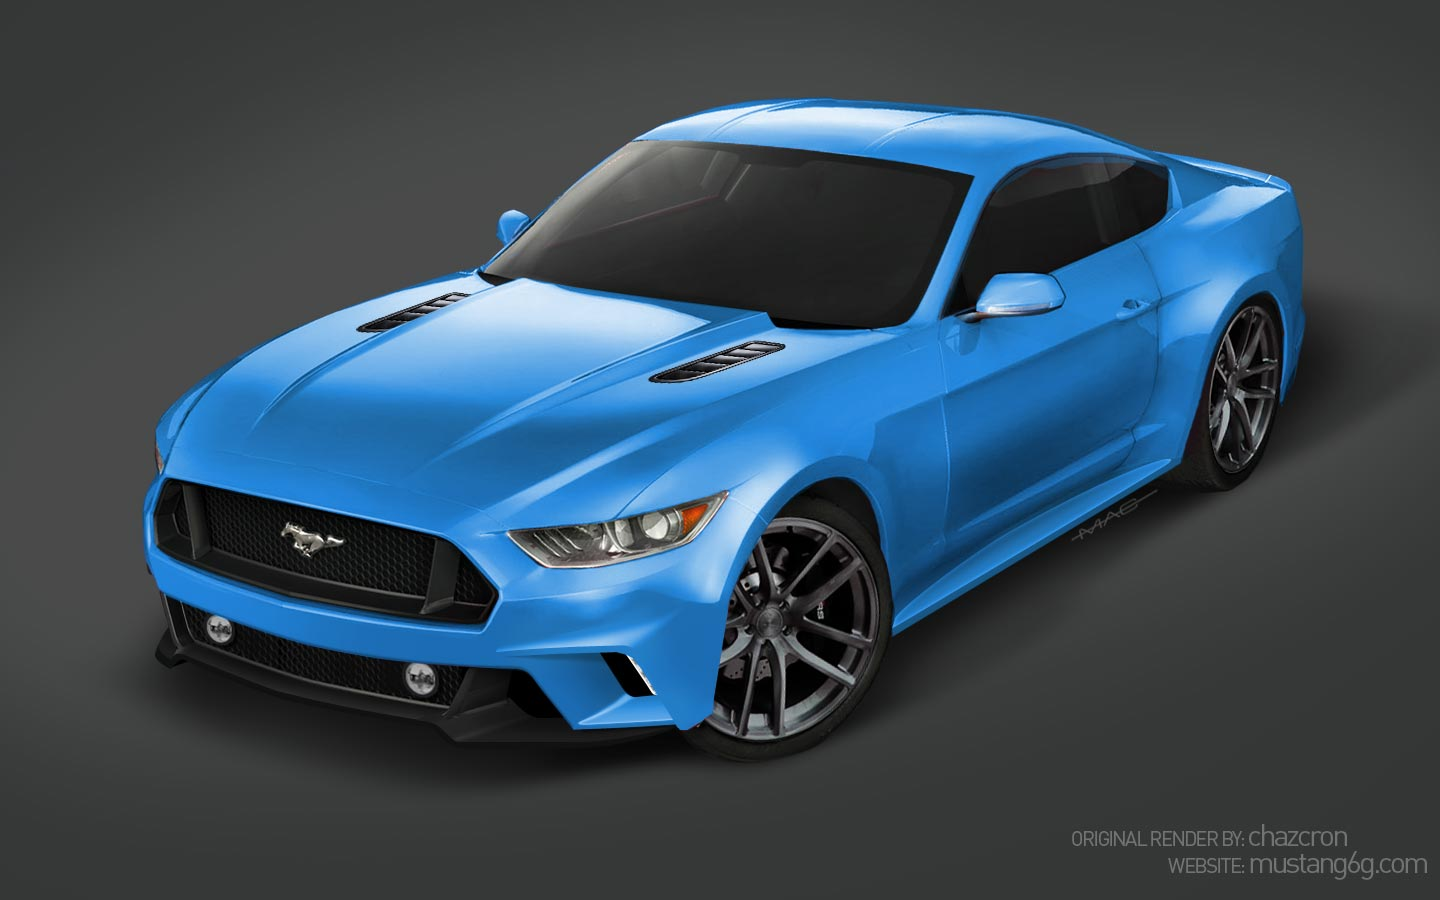 65 best images about 2015 mustang on pinterest cars arizona and photo galleries - Ford Mustang 2015 Blue